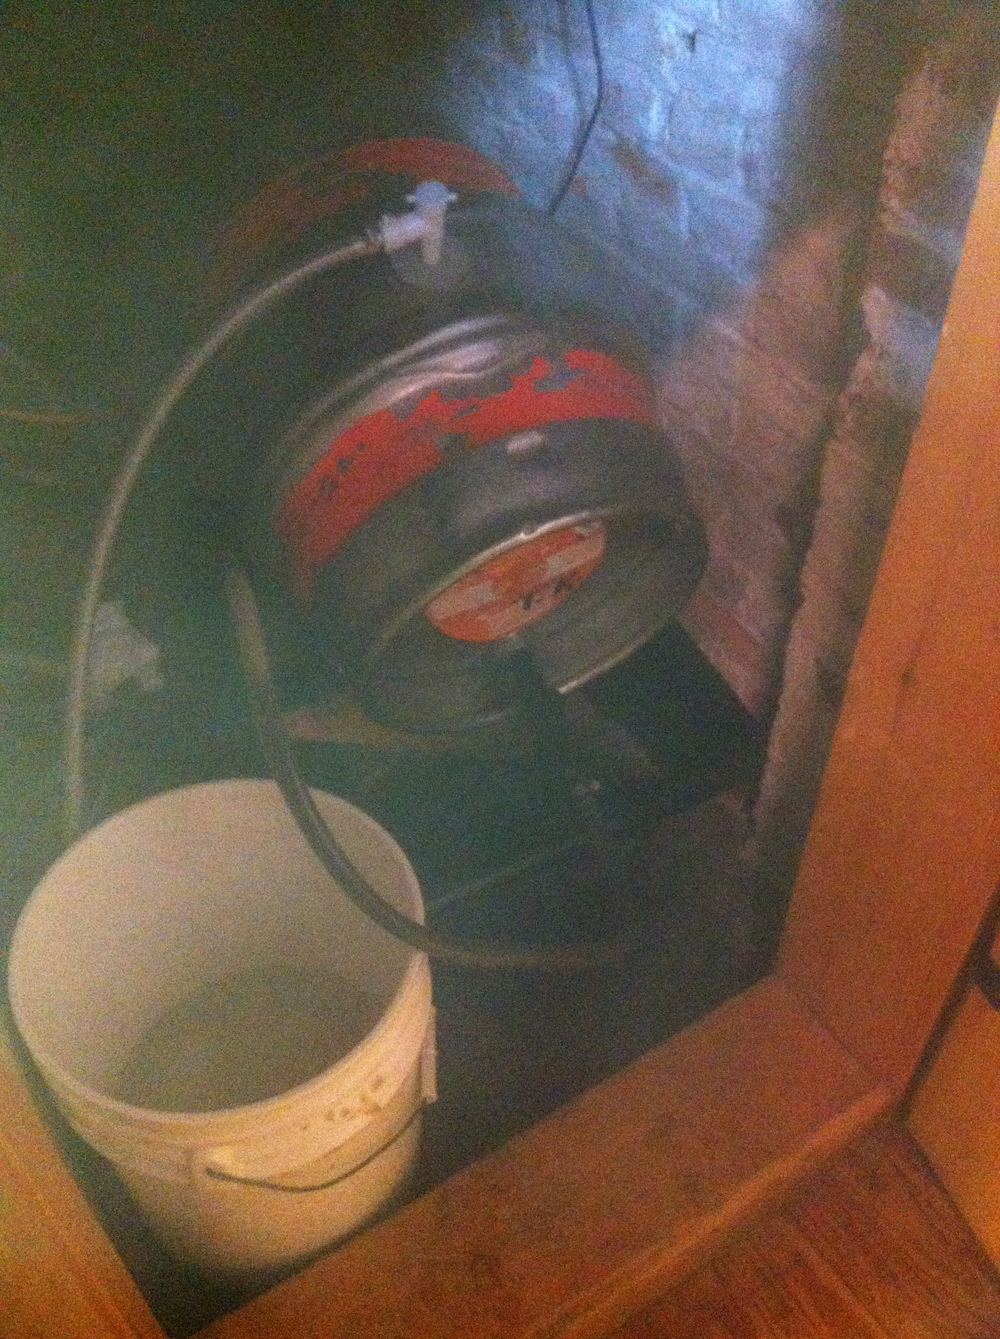 Find a little closet? Put a cask in it!